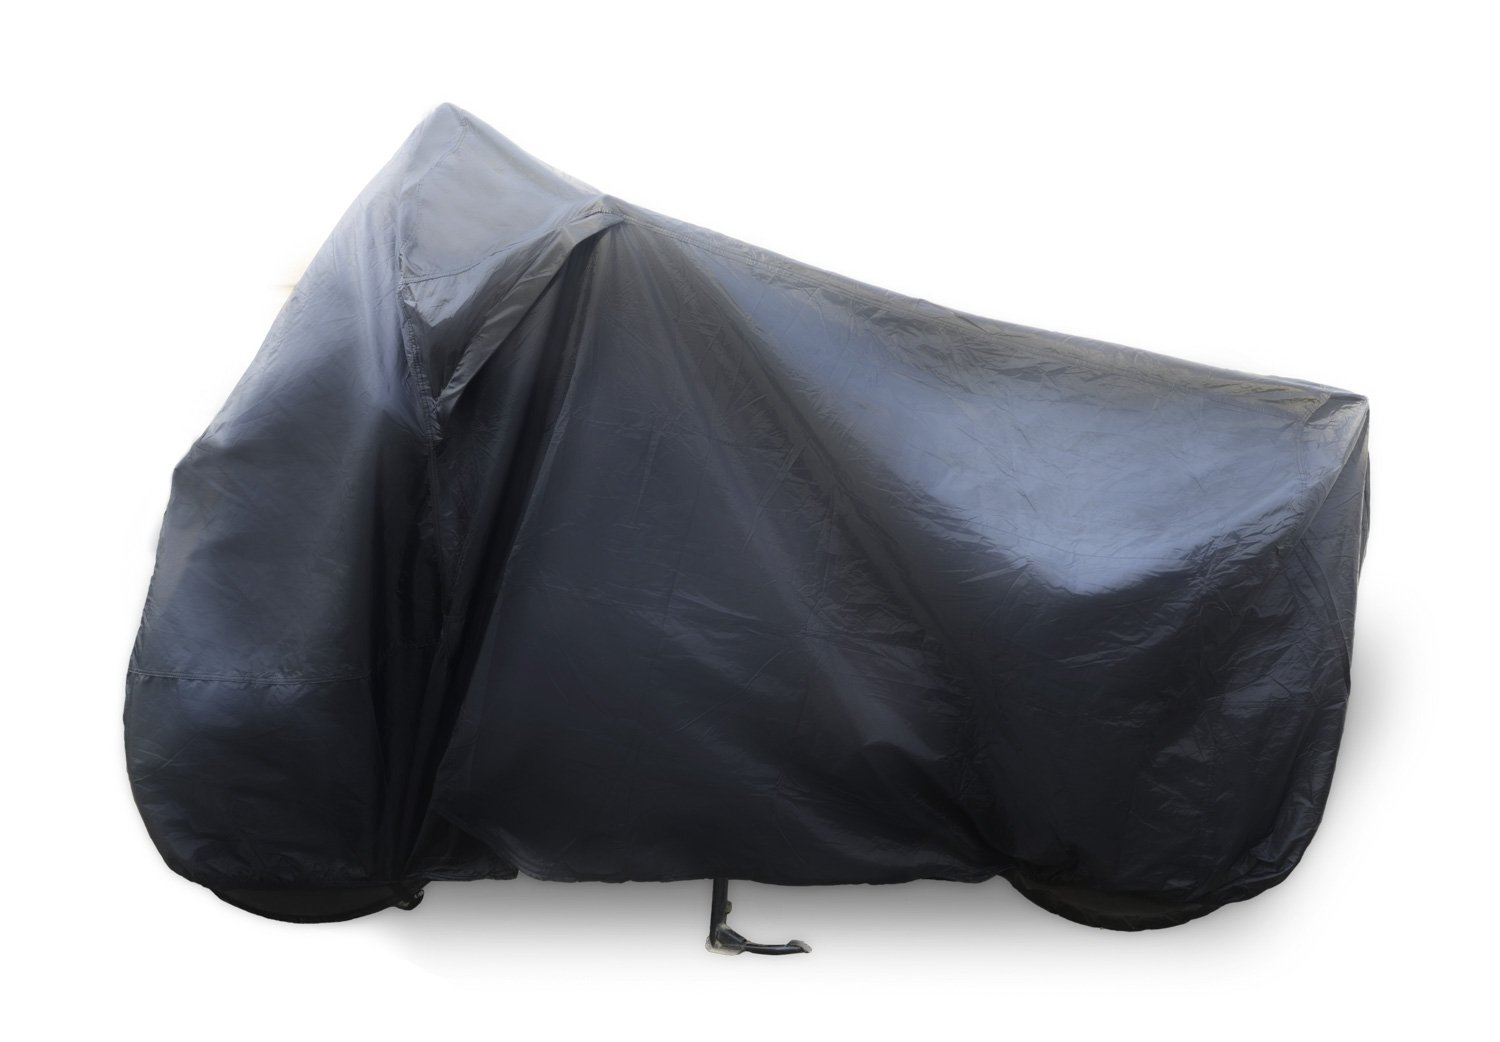 GAUCHO Motorcycle cover – Heavy duty all-season outdoor protection for fully dressed tourers - Waterproof outside shelter with soft cotton and heat resistant liner inside. (4XL)